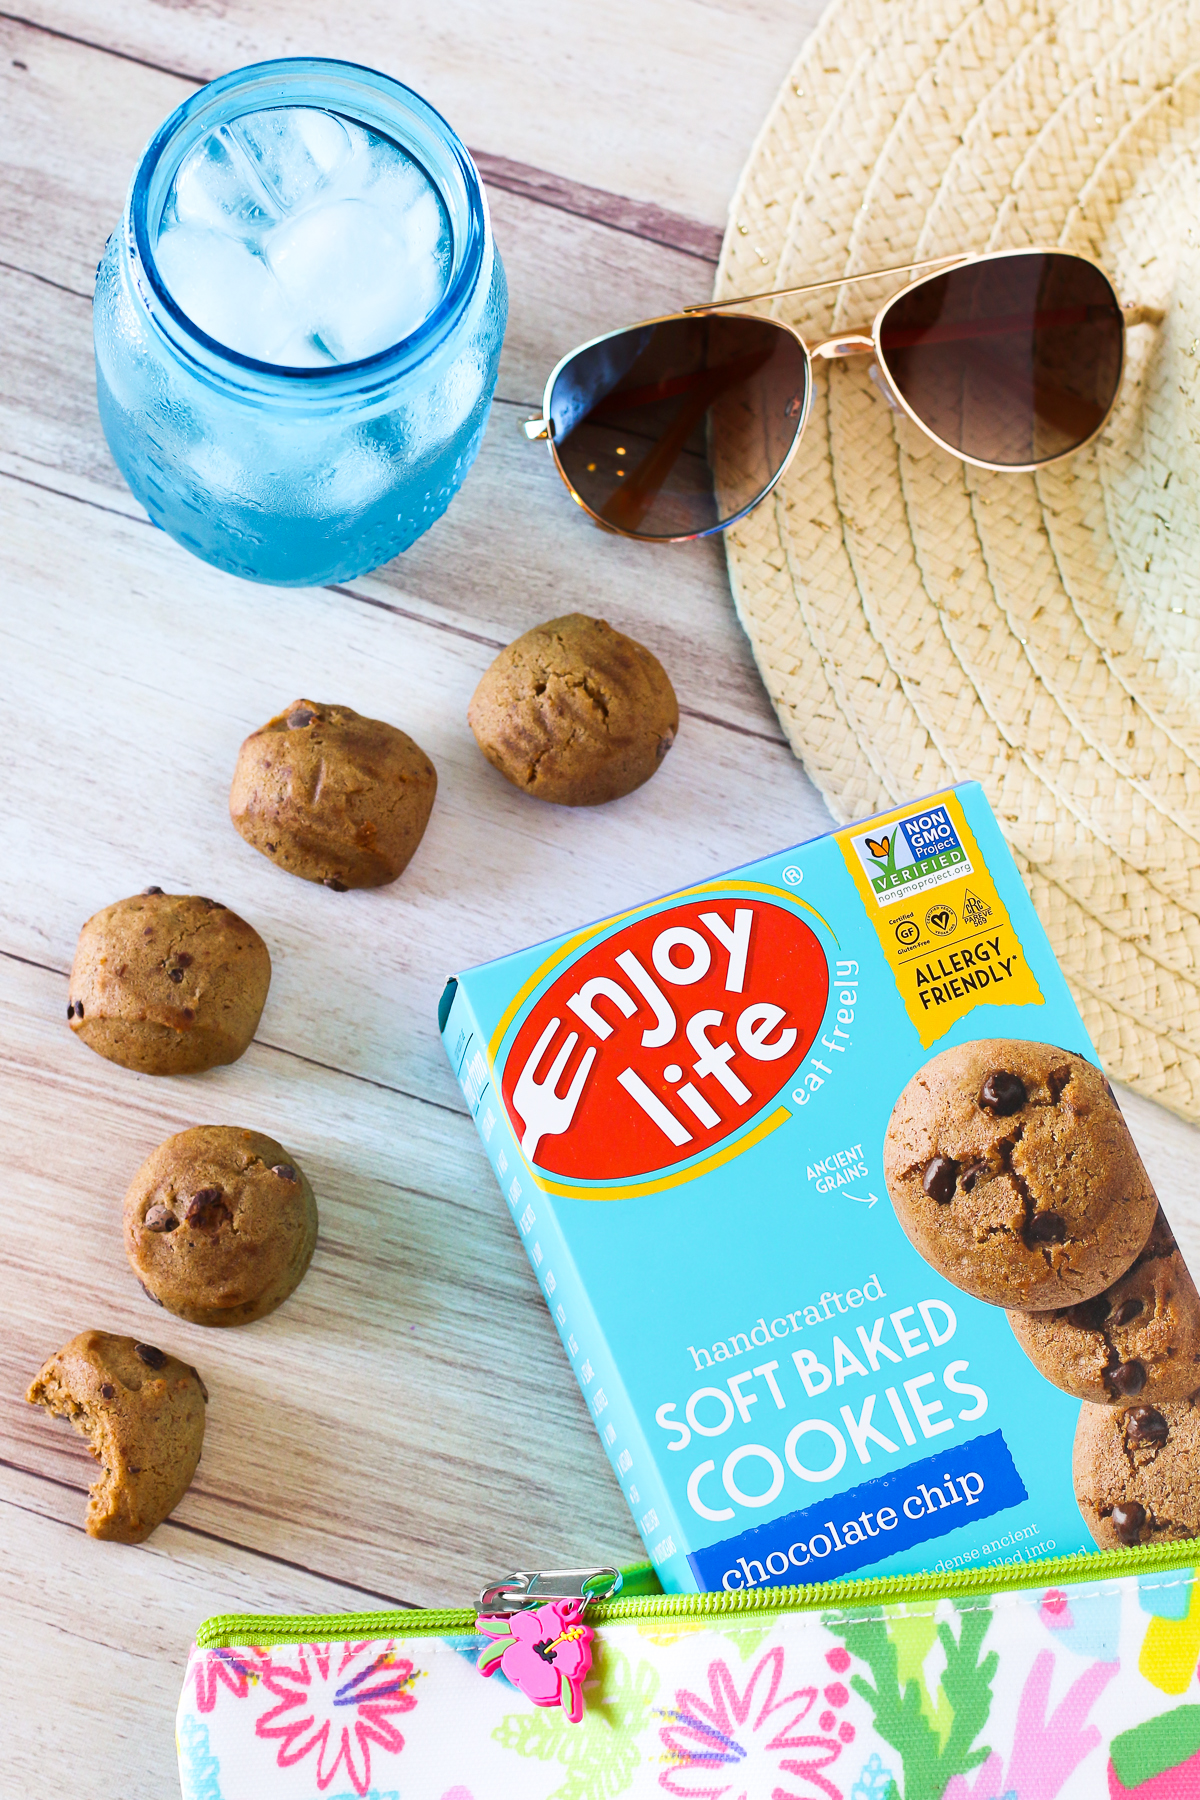 Spring into Summer with Enjoy Life. For a trip to the beach or an afternoon at the pool, be sure to pack some allergen free sweet treats!